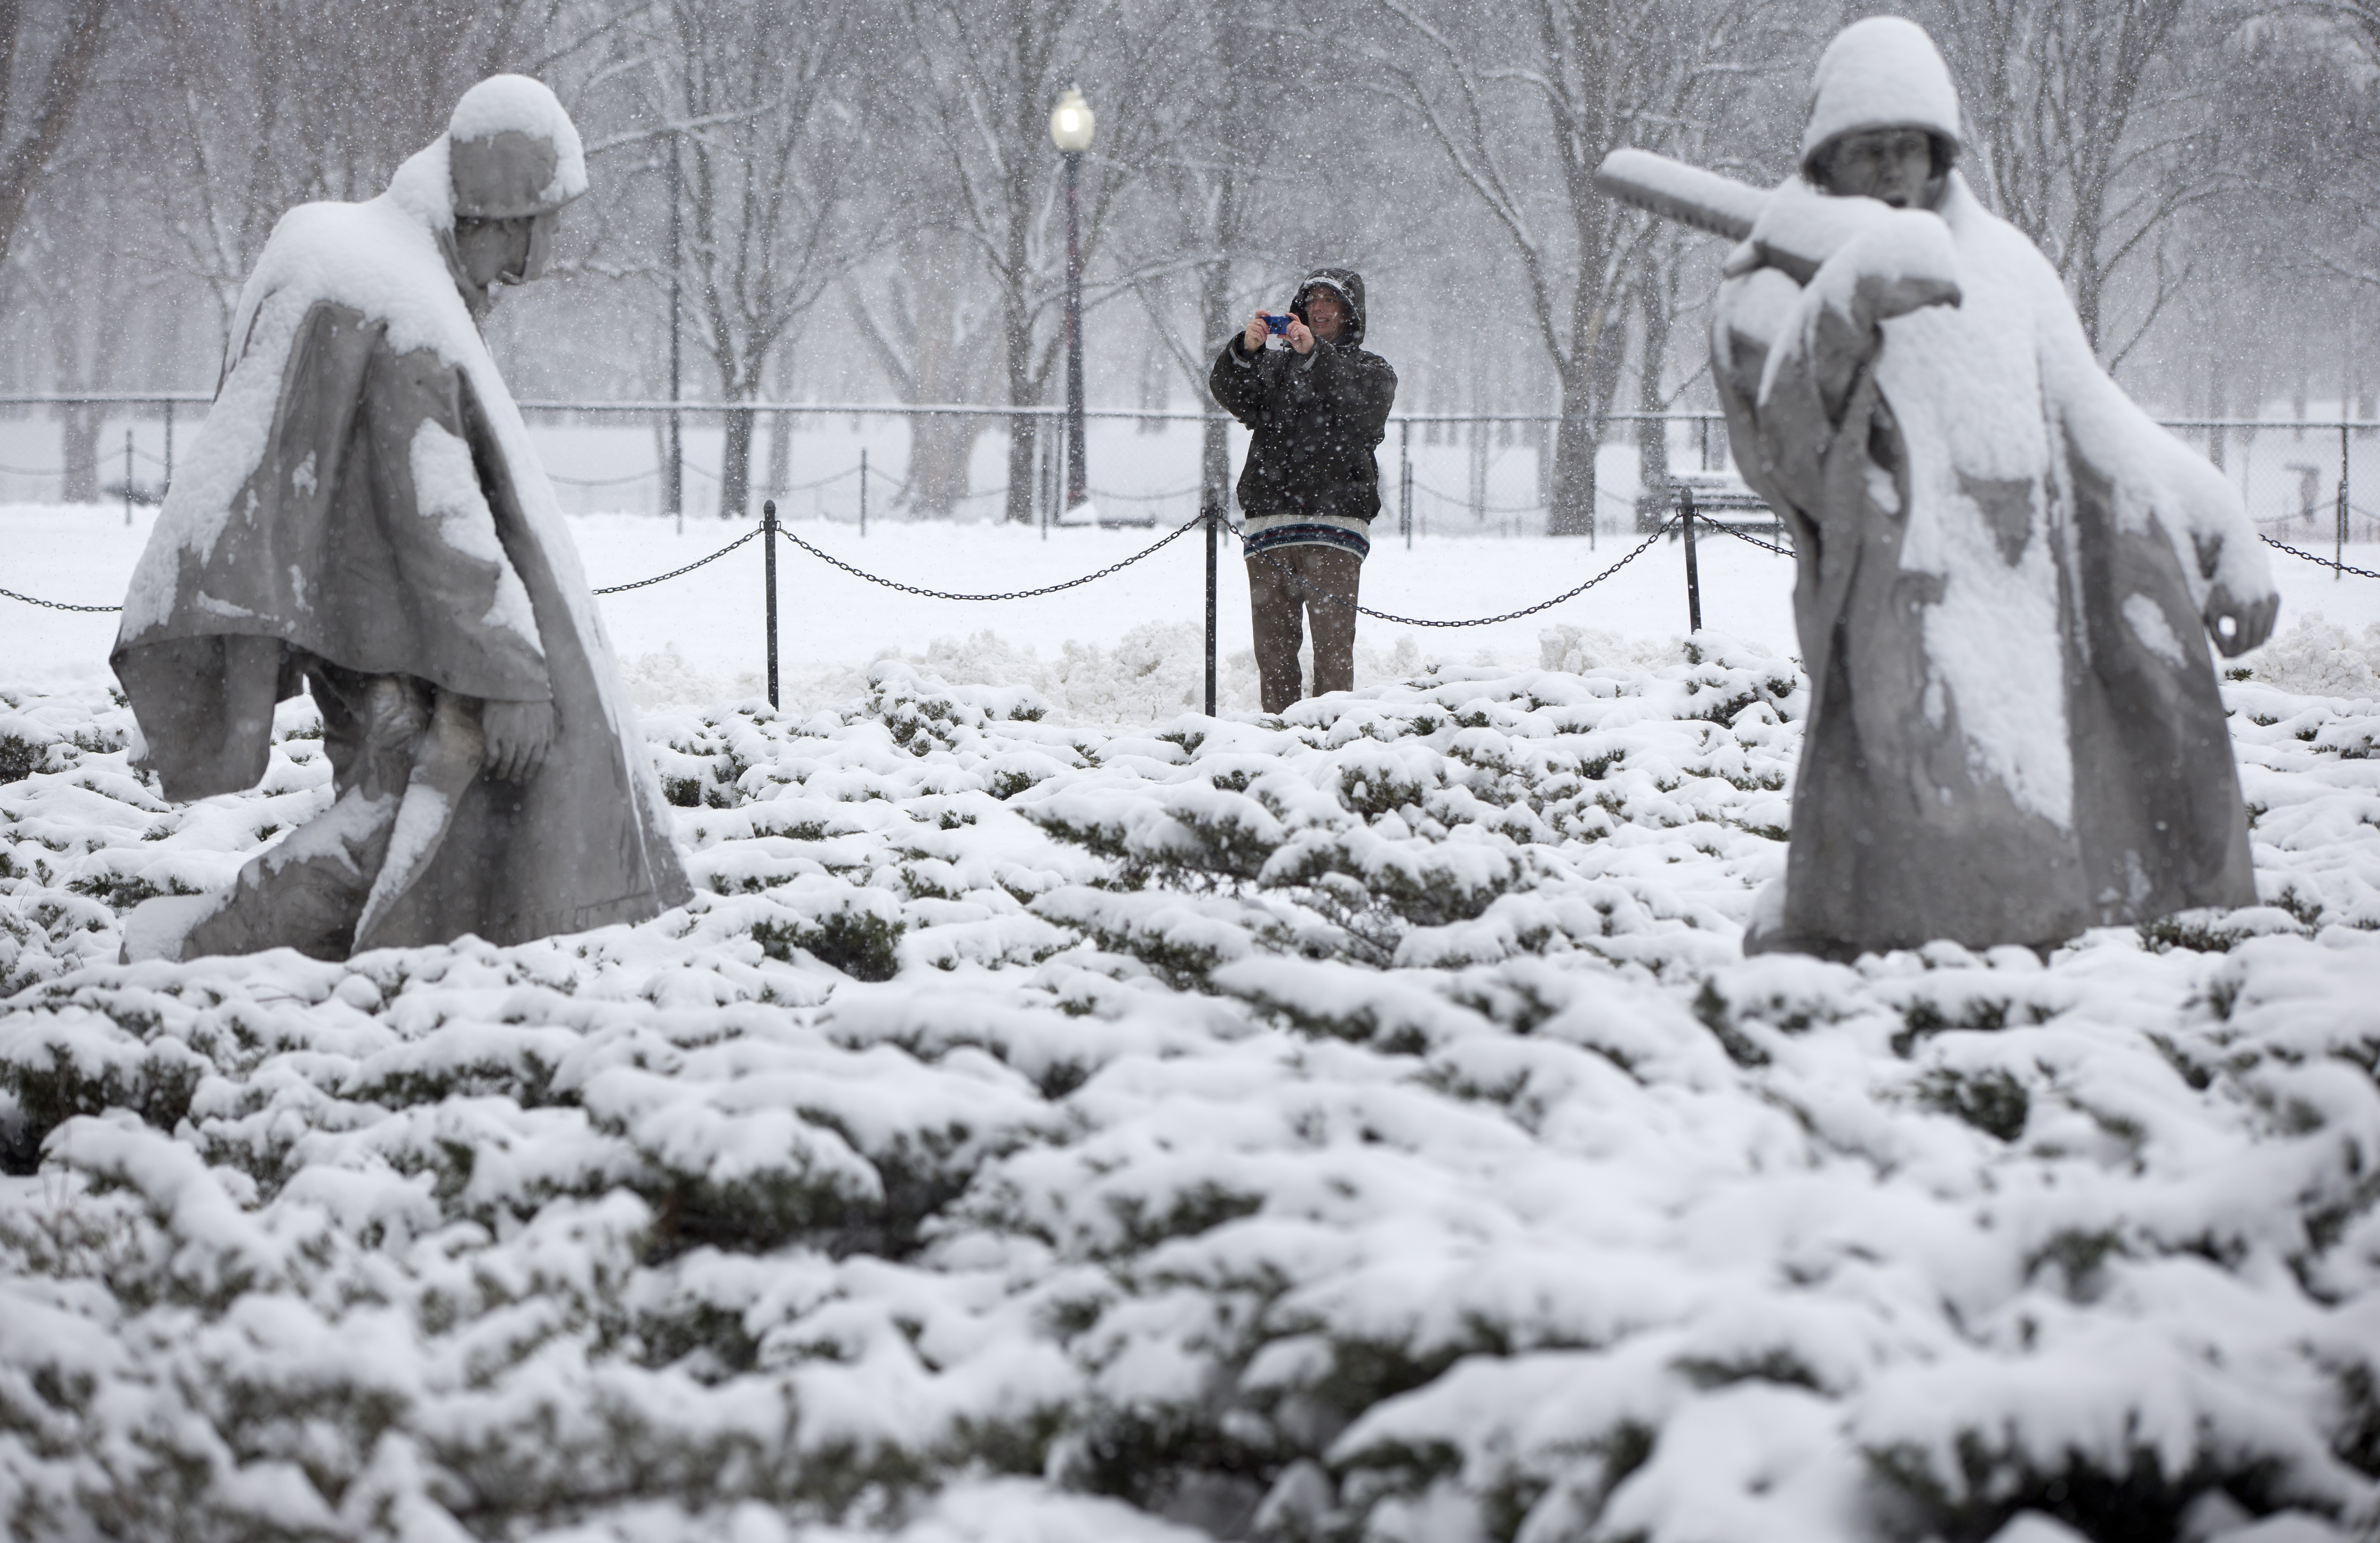 From spring to snow in a day? Winter returns to DC area